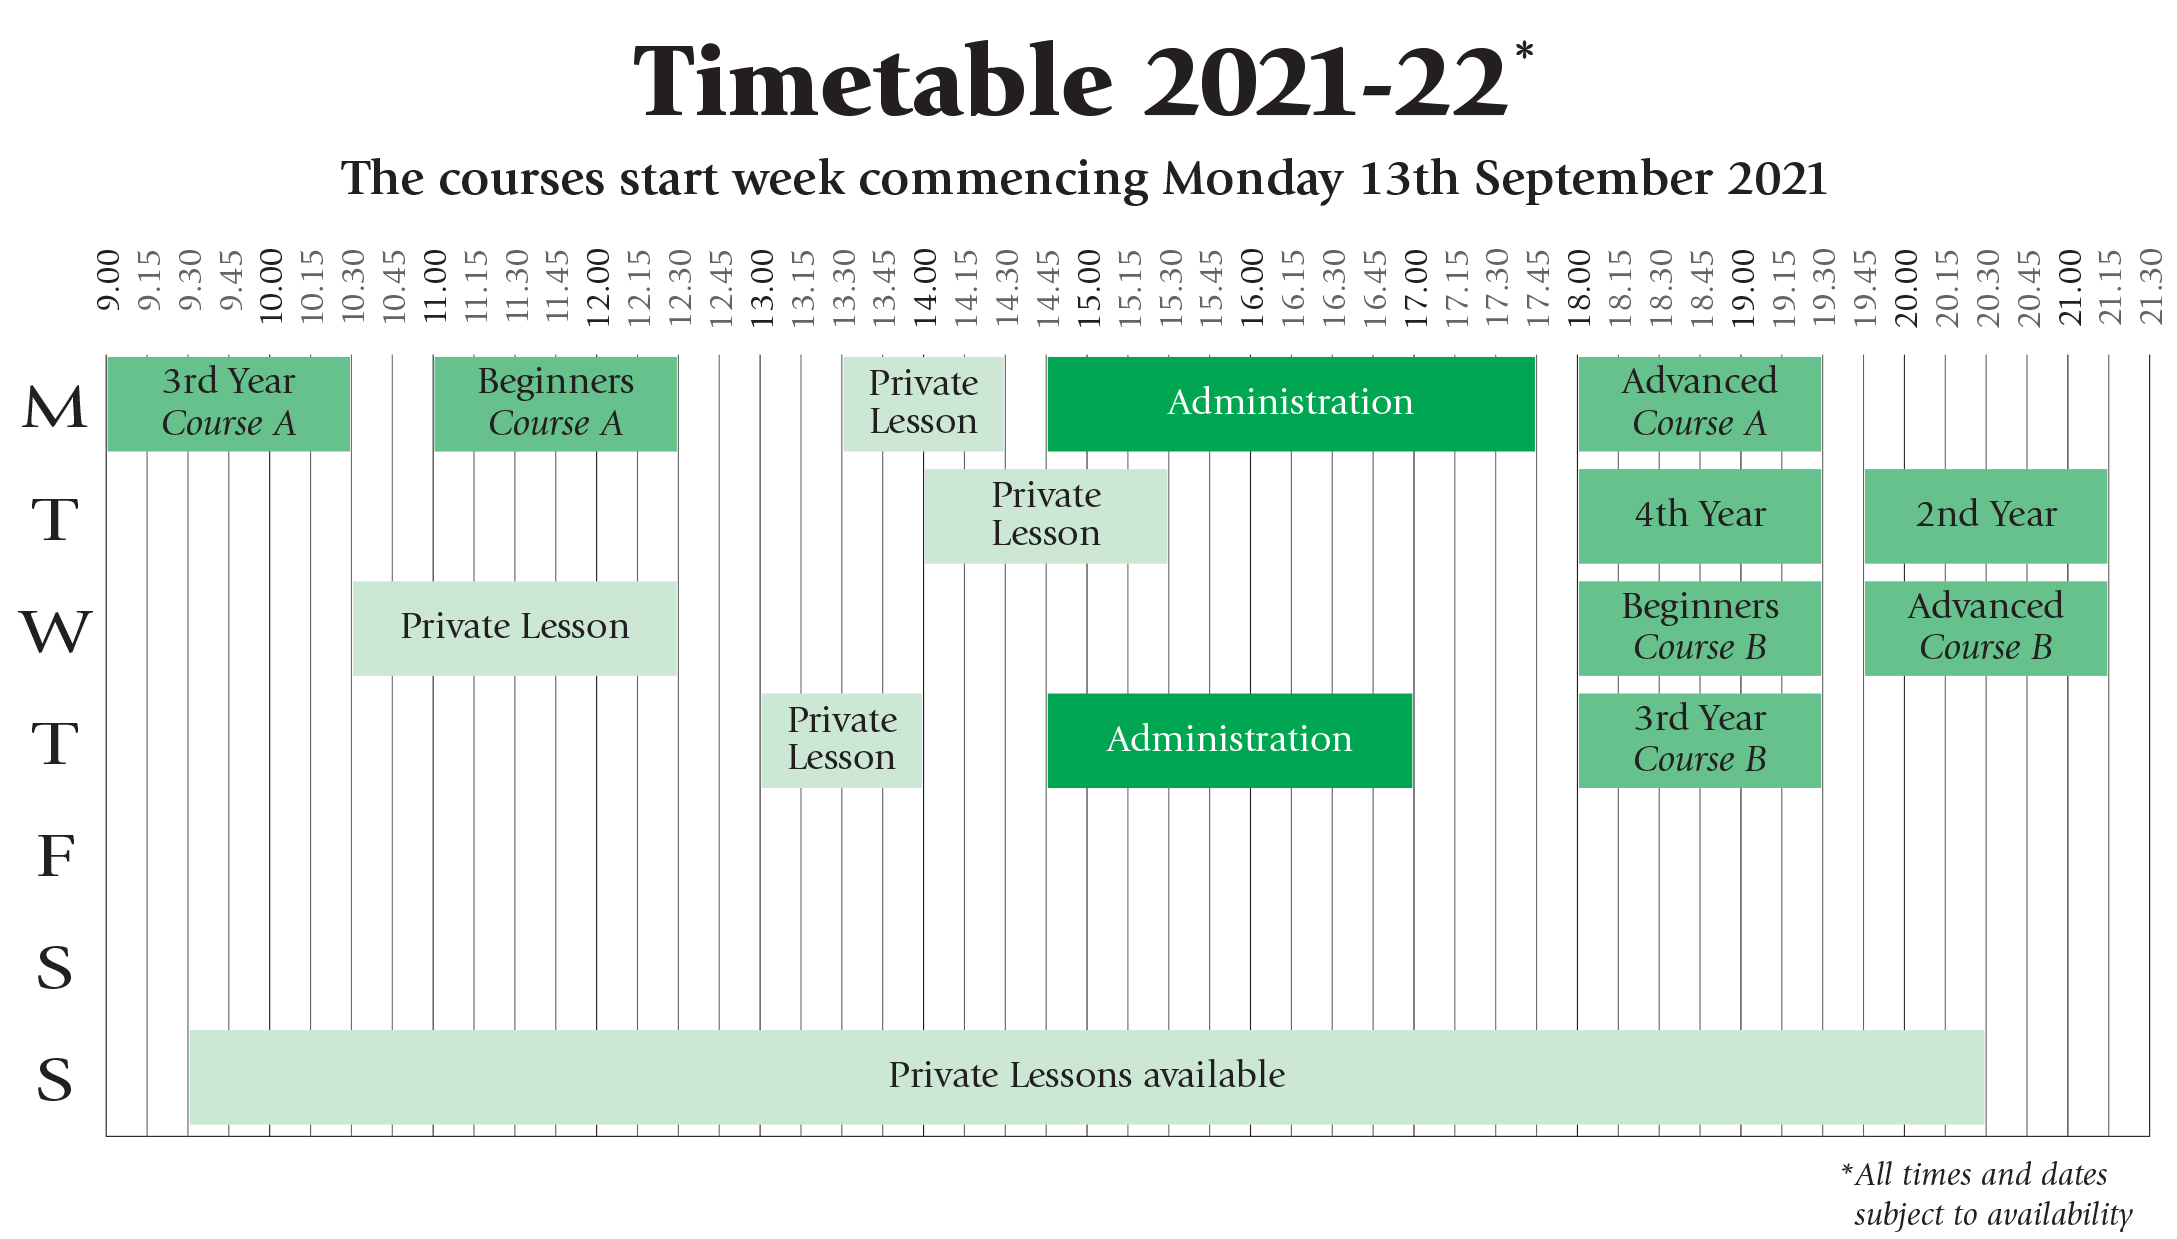 ciao timetable 21 22